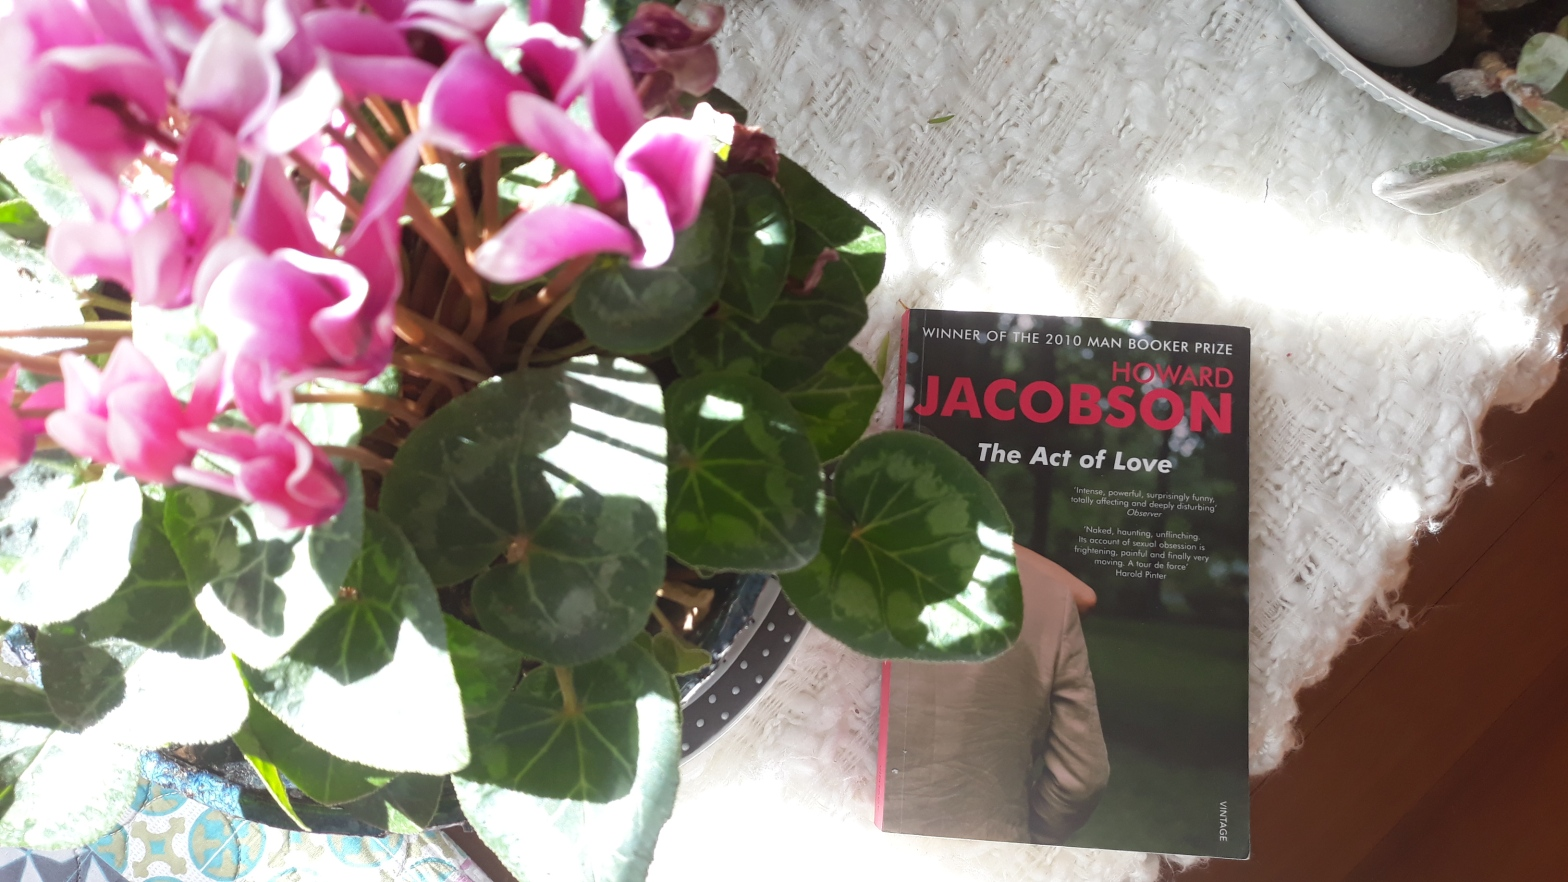 he Act of Love by Howard Jacobson